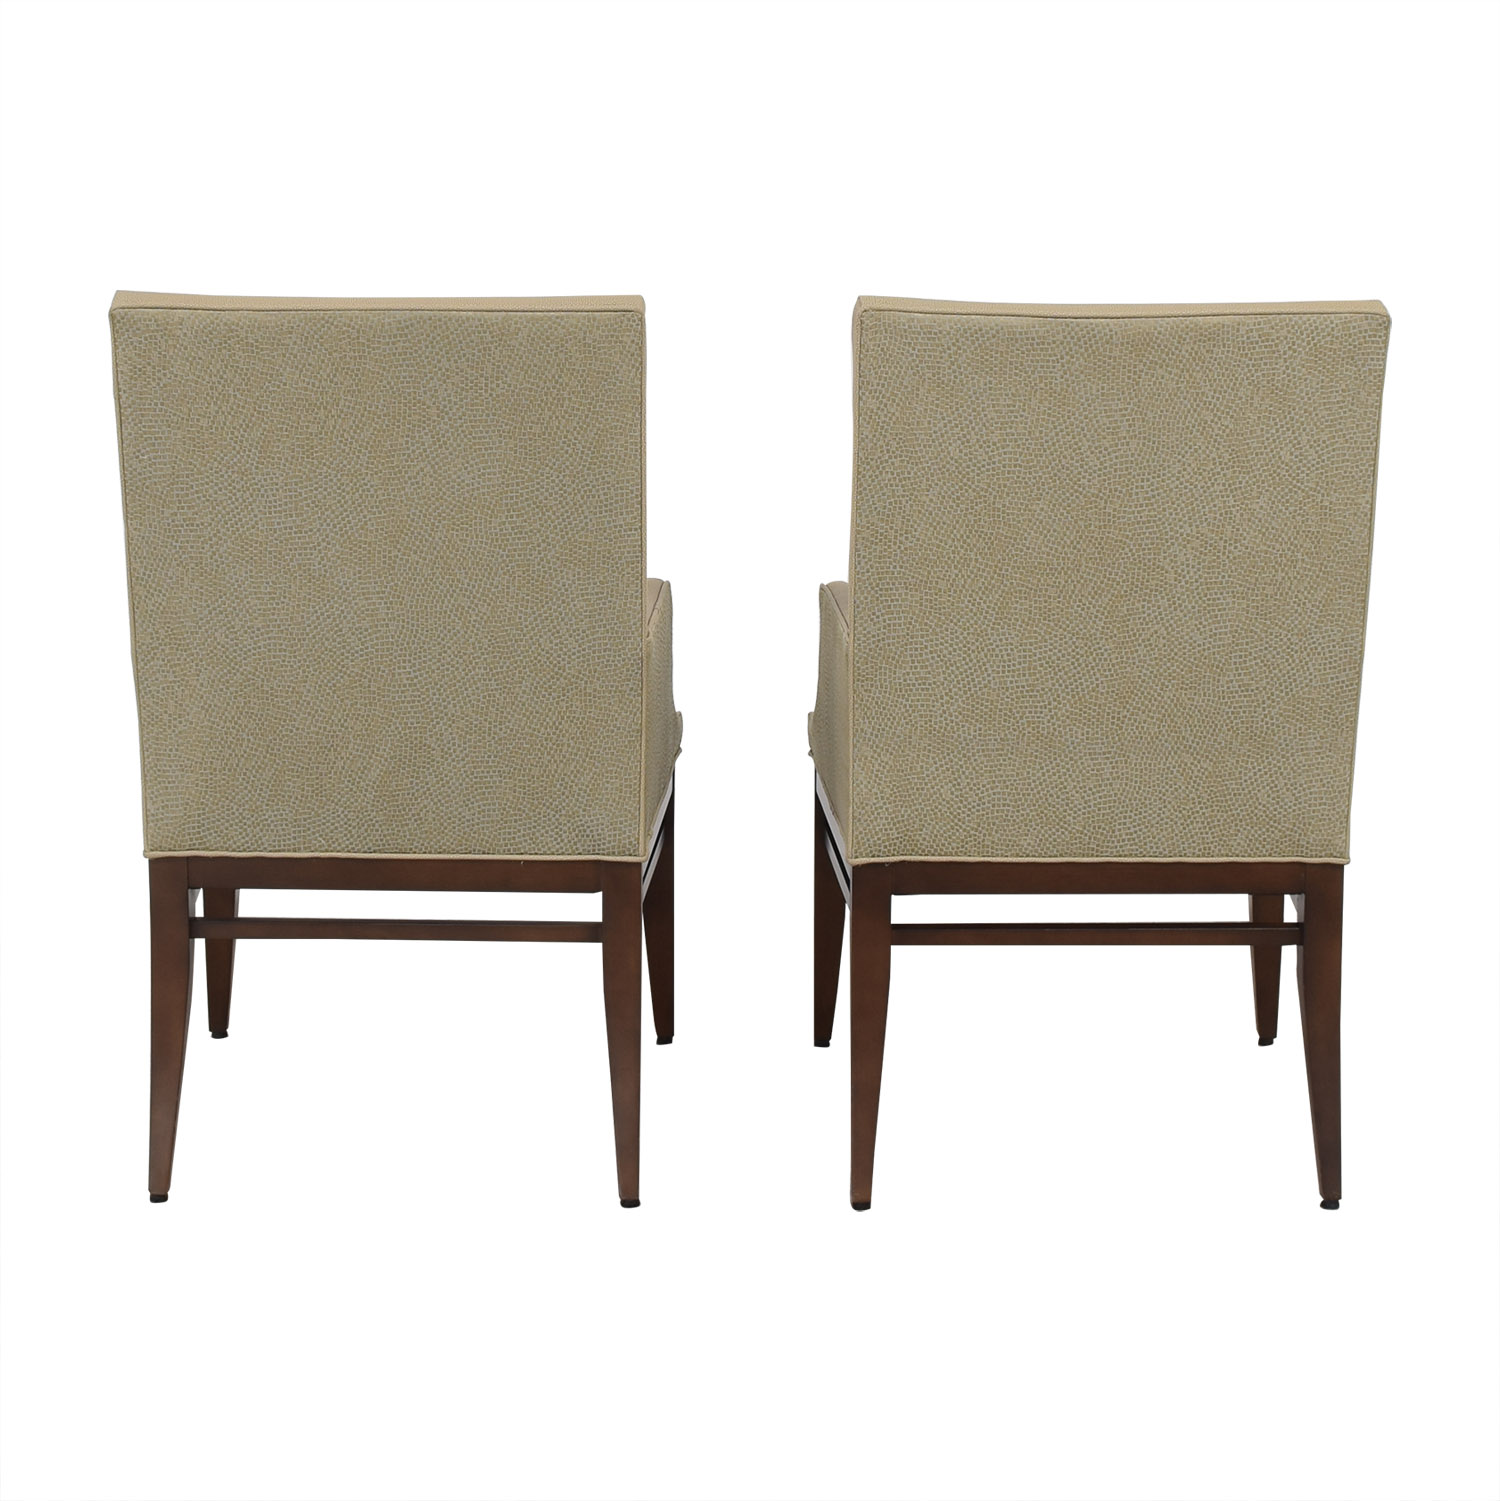 Duralee Duralee Custom Upholstered Dining Arm Chairs on sale